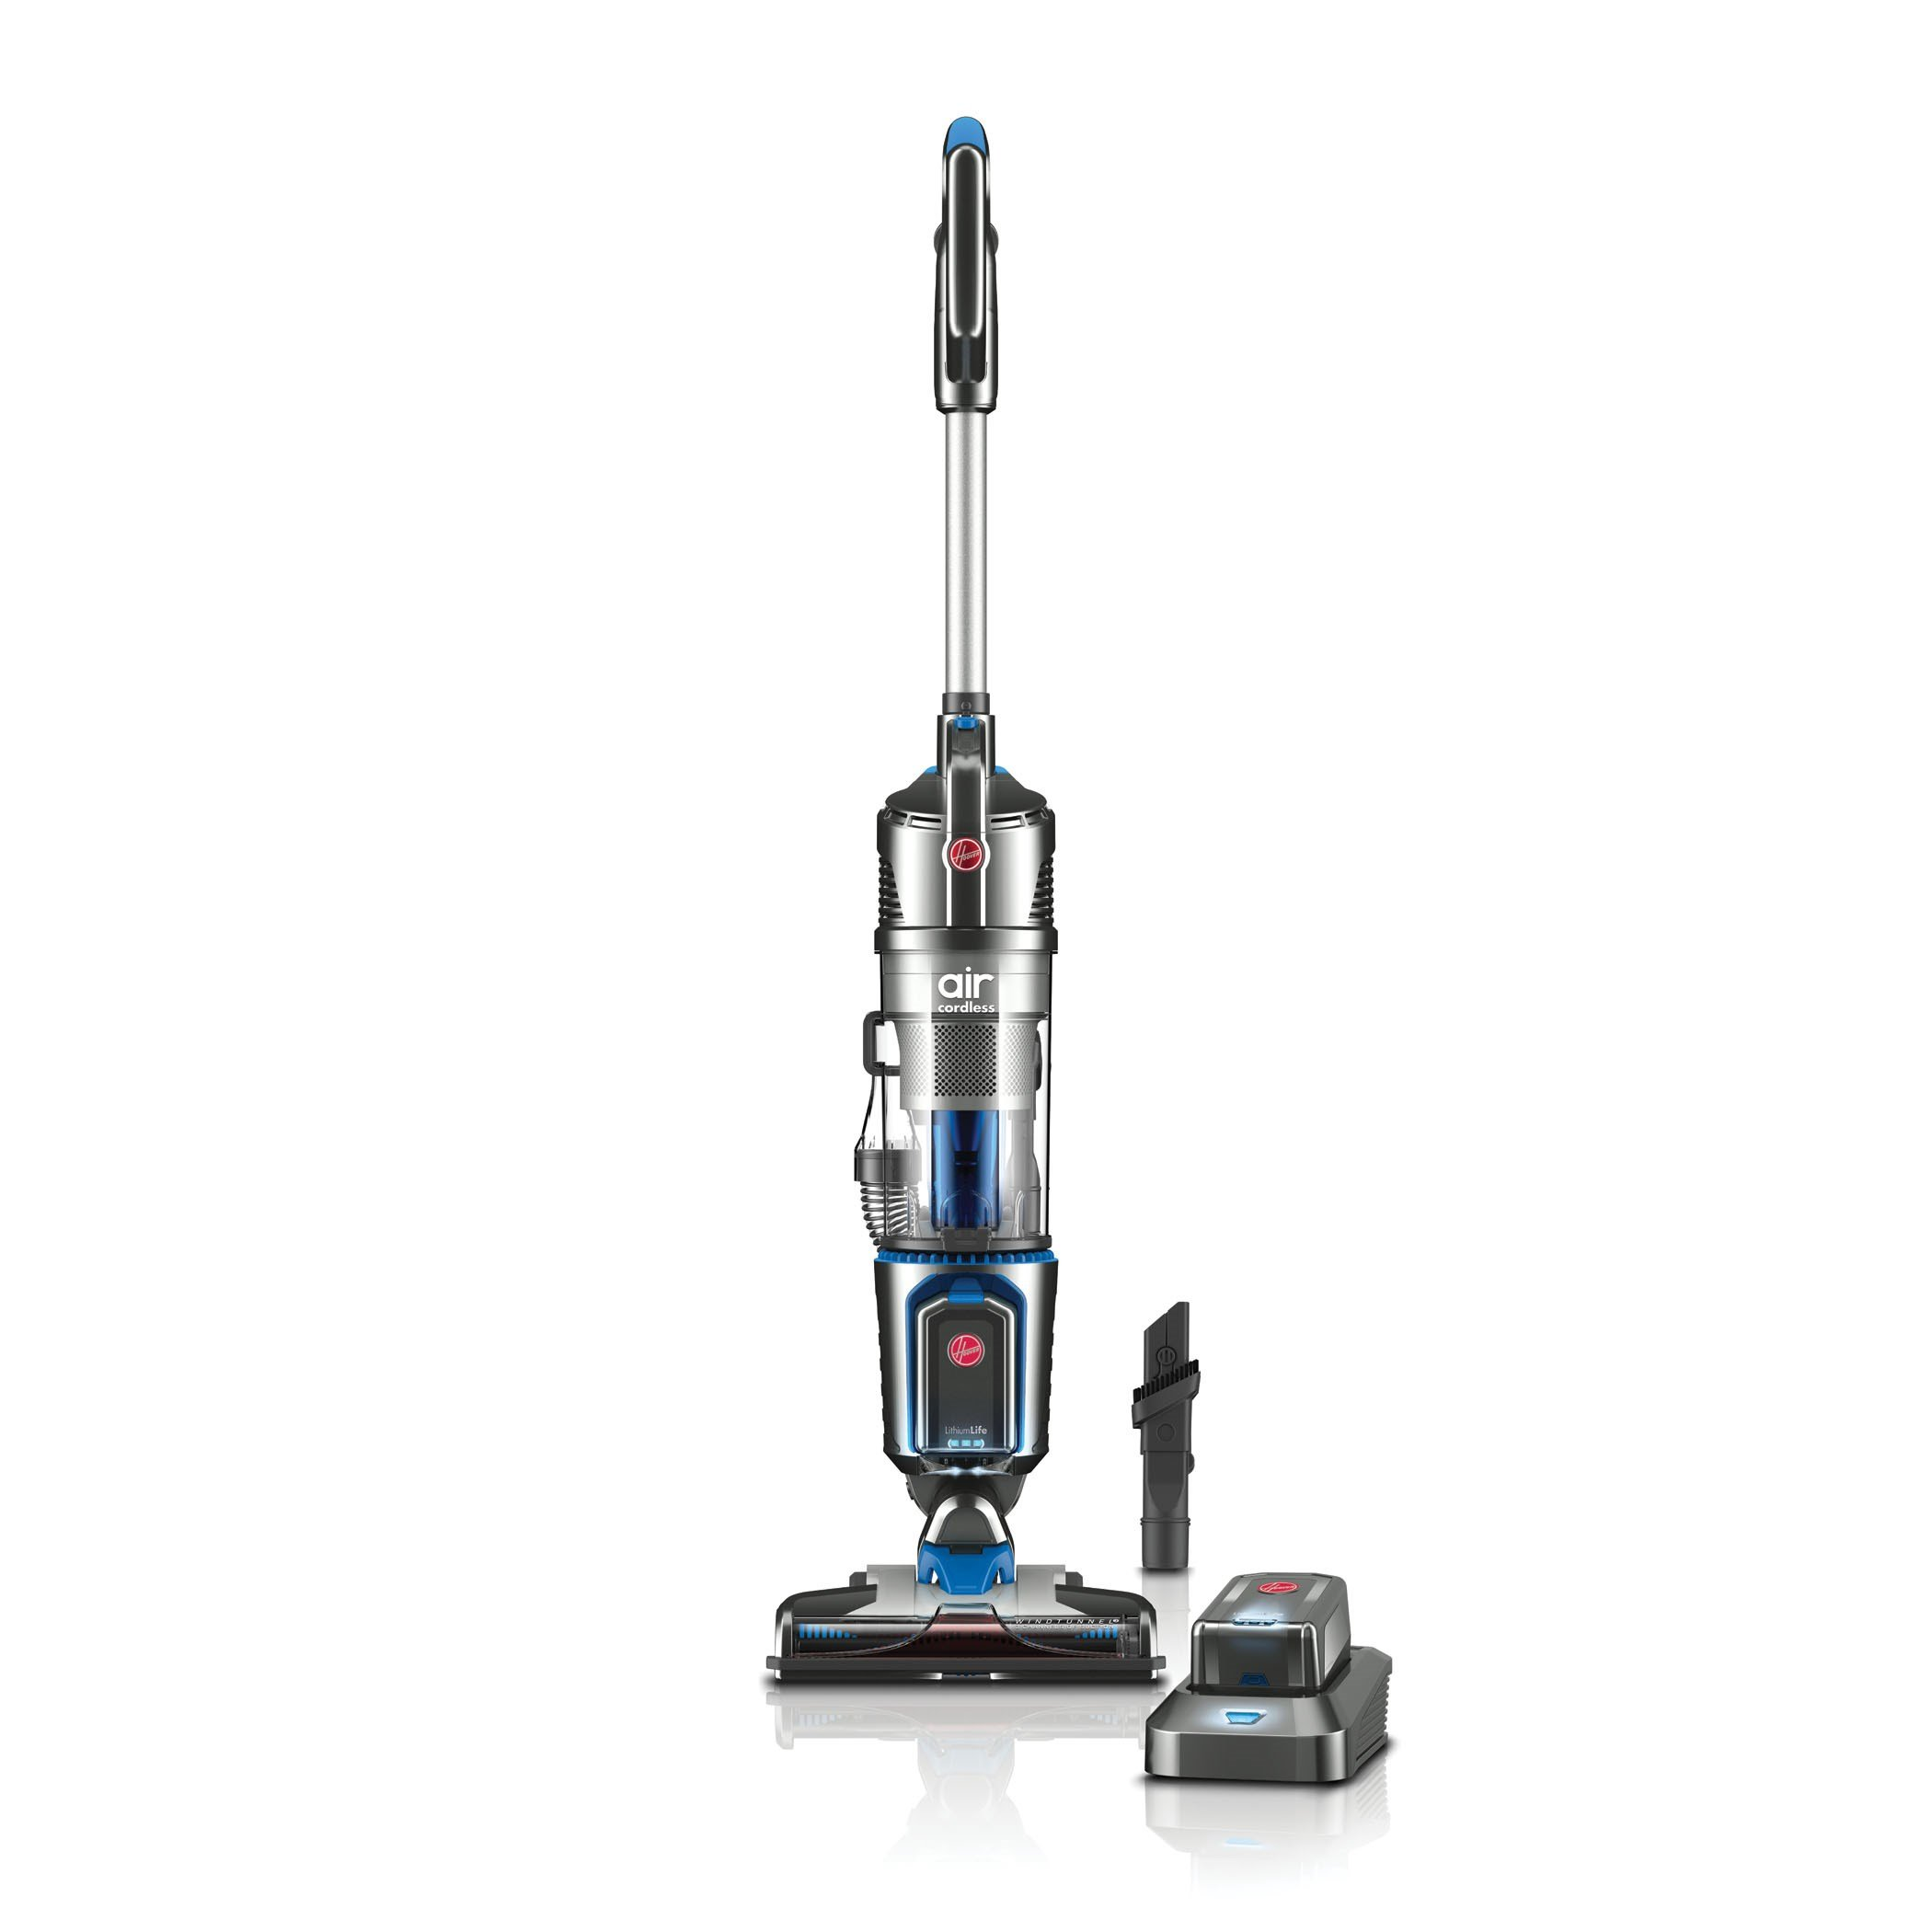 Hoover Air Cordless 20 Volt Lithium Ion Bagless Steerable Upright Vacuum Cleaner, BH50111 by Hoover